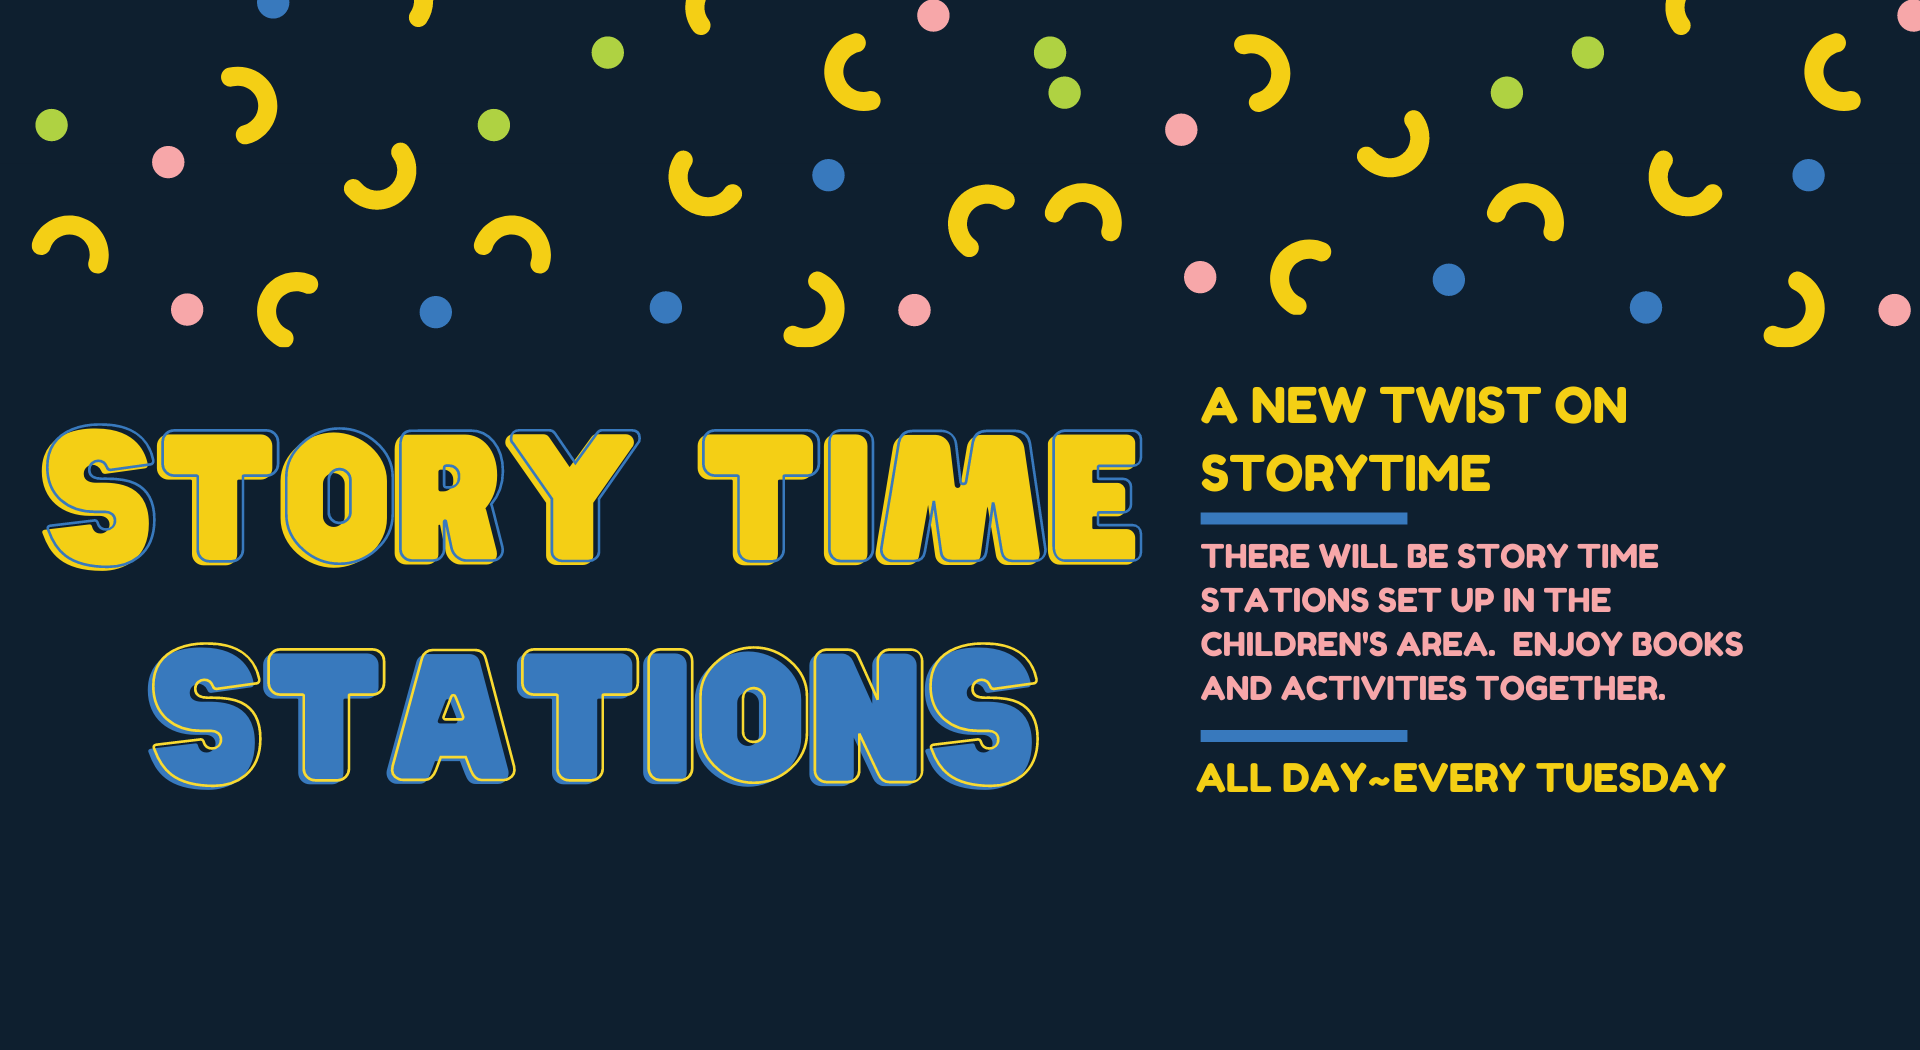 Story Time Stations